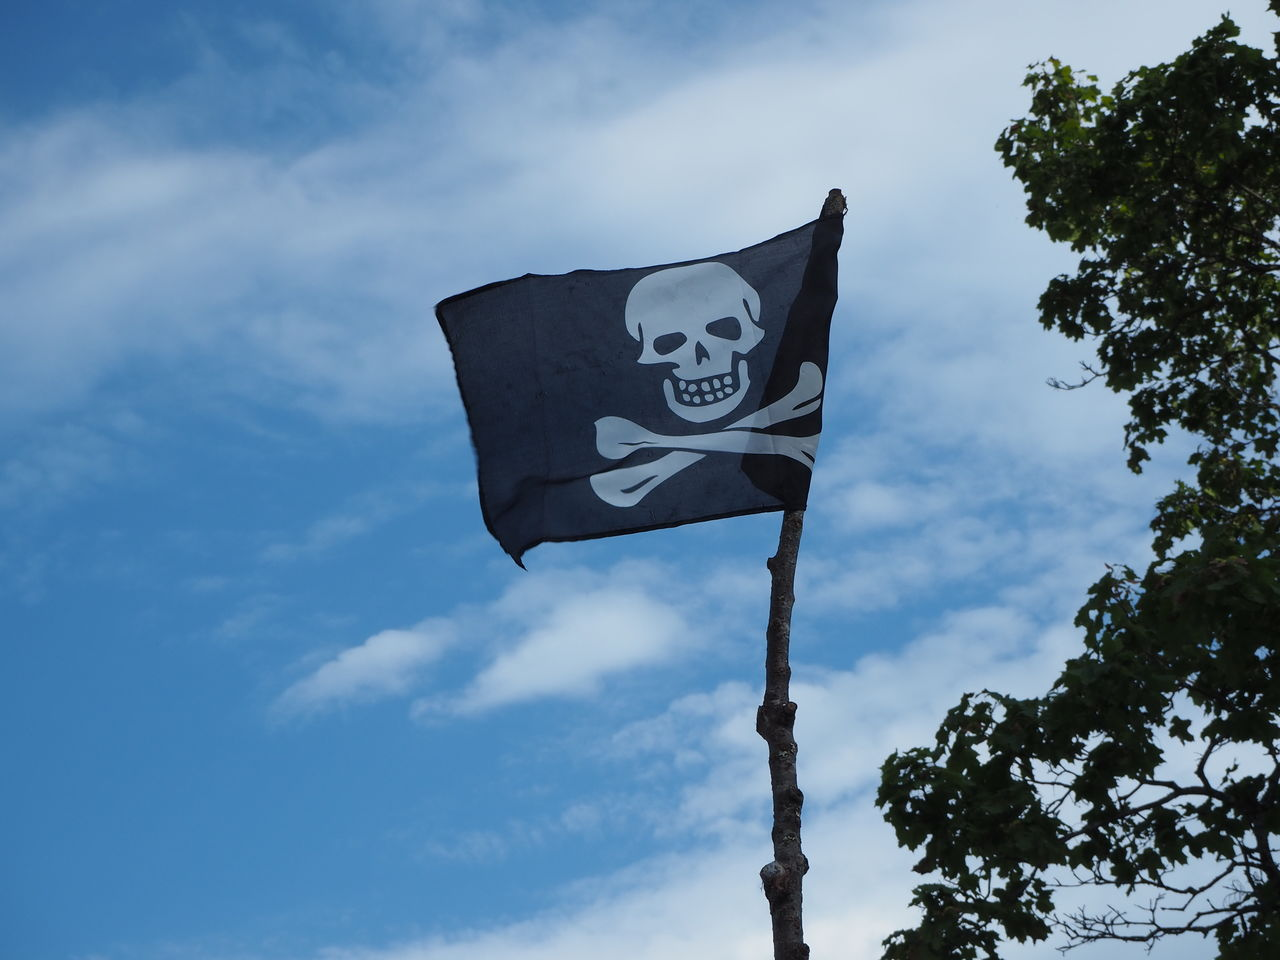 sky, low angle view, cloud - sky, nature, tree, flag, no people, day, plant, patriotism, sign, communication, outdoors, environment, text, pole, symbol, warning sign, blue, wind, warning symbol